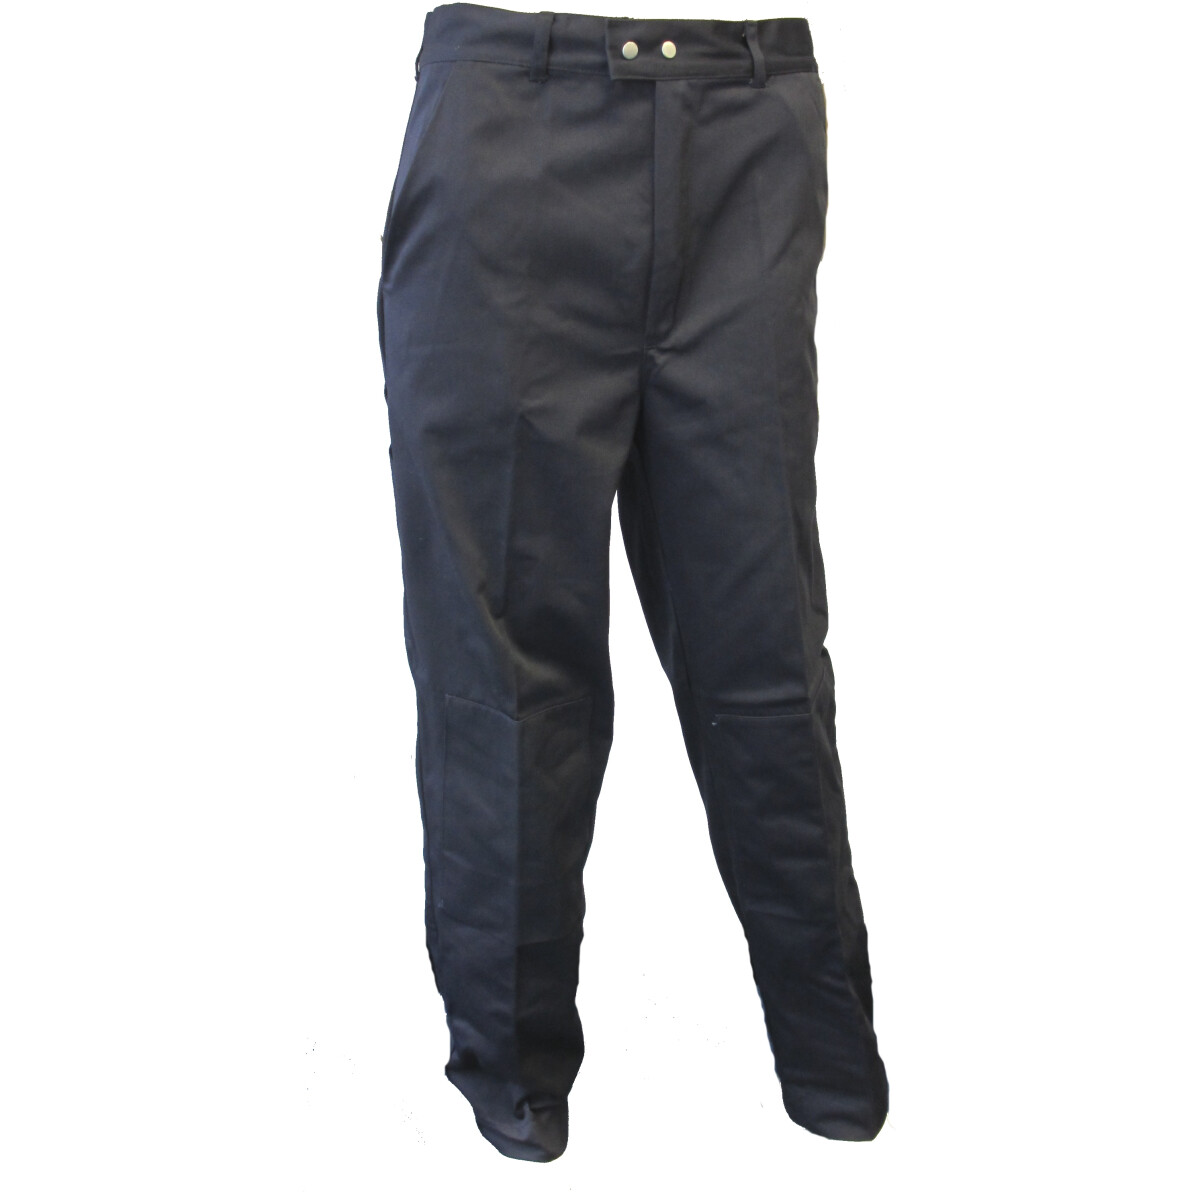 Blue Castle Clothing 755 'Knee Pocket' Trousers - Navy Blue